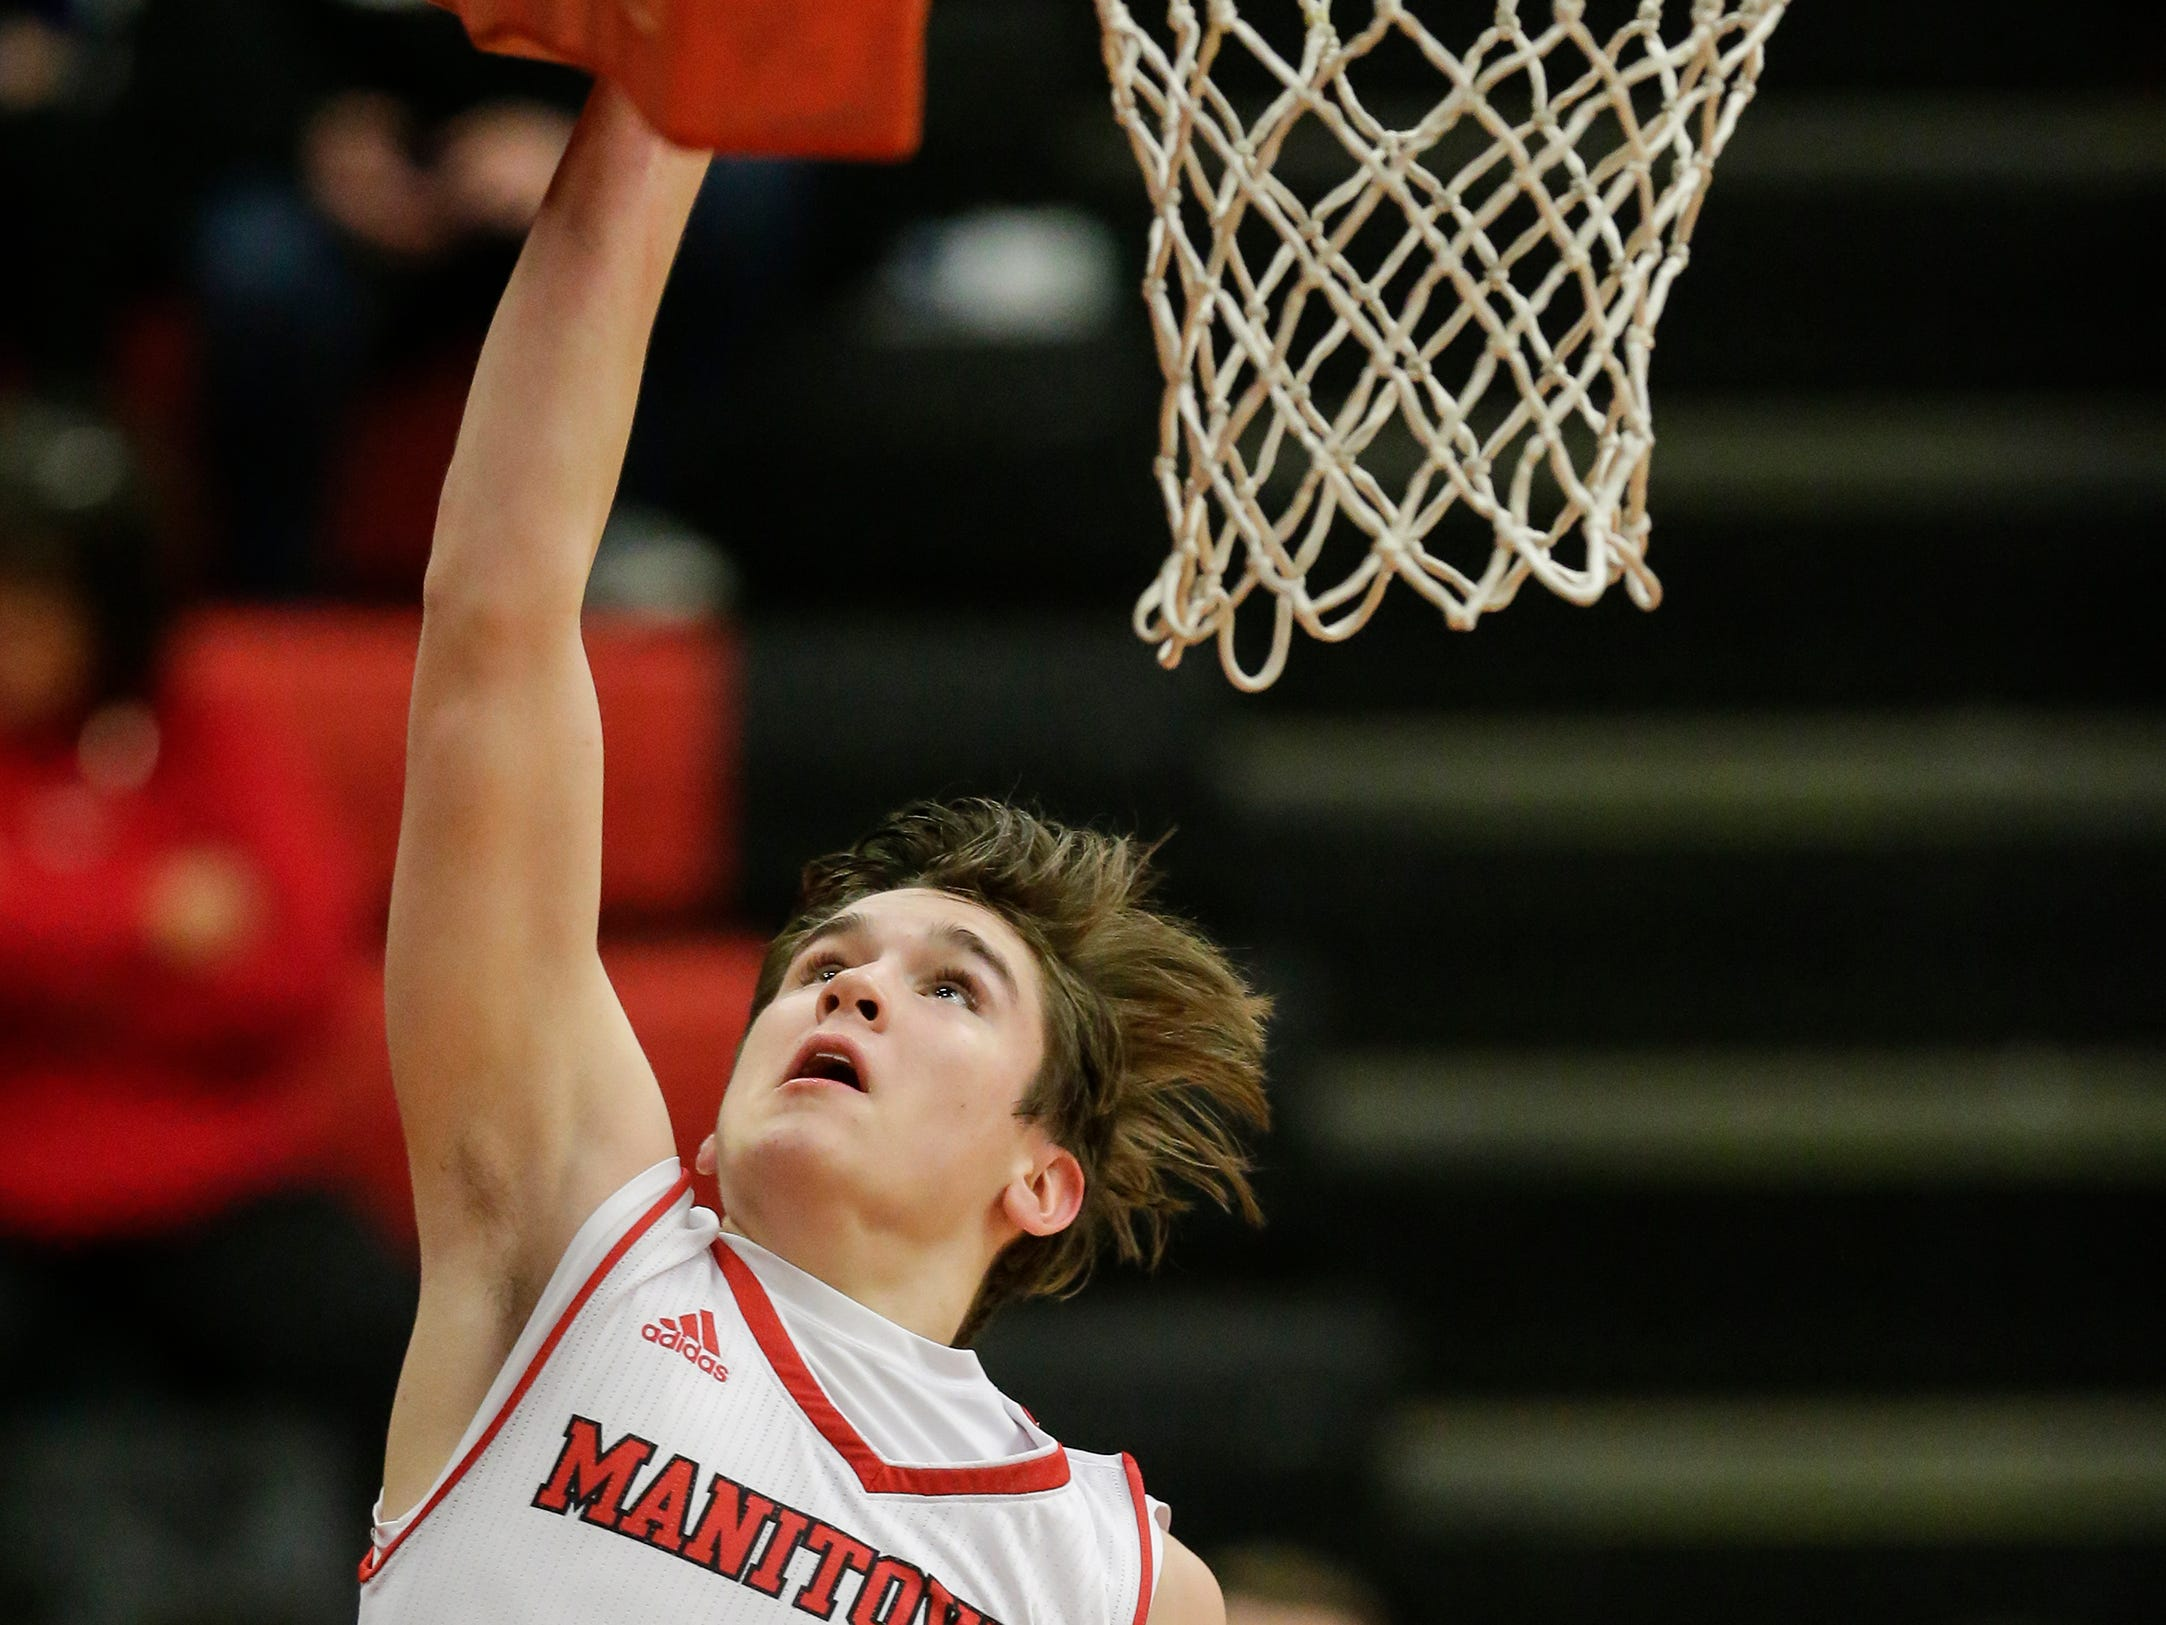 Manitowoc Lincoln's Mason Dopirak shoots a layup on a fast break against Green Bay Preble during boys FRCC basketball at Manitowoc Lincoln High School Friday, December 21, 2018, in Manitowoc, Wis. Joshua Clark/USA TODAY NETWORK-Wisconsin